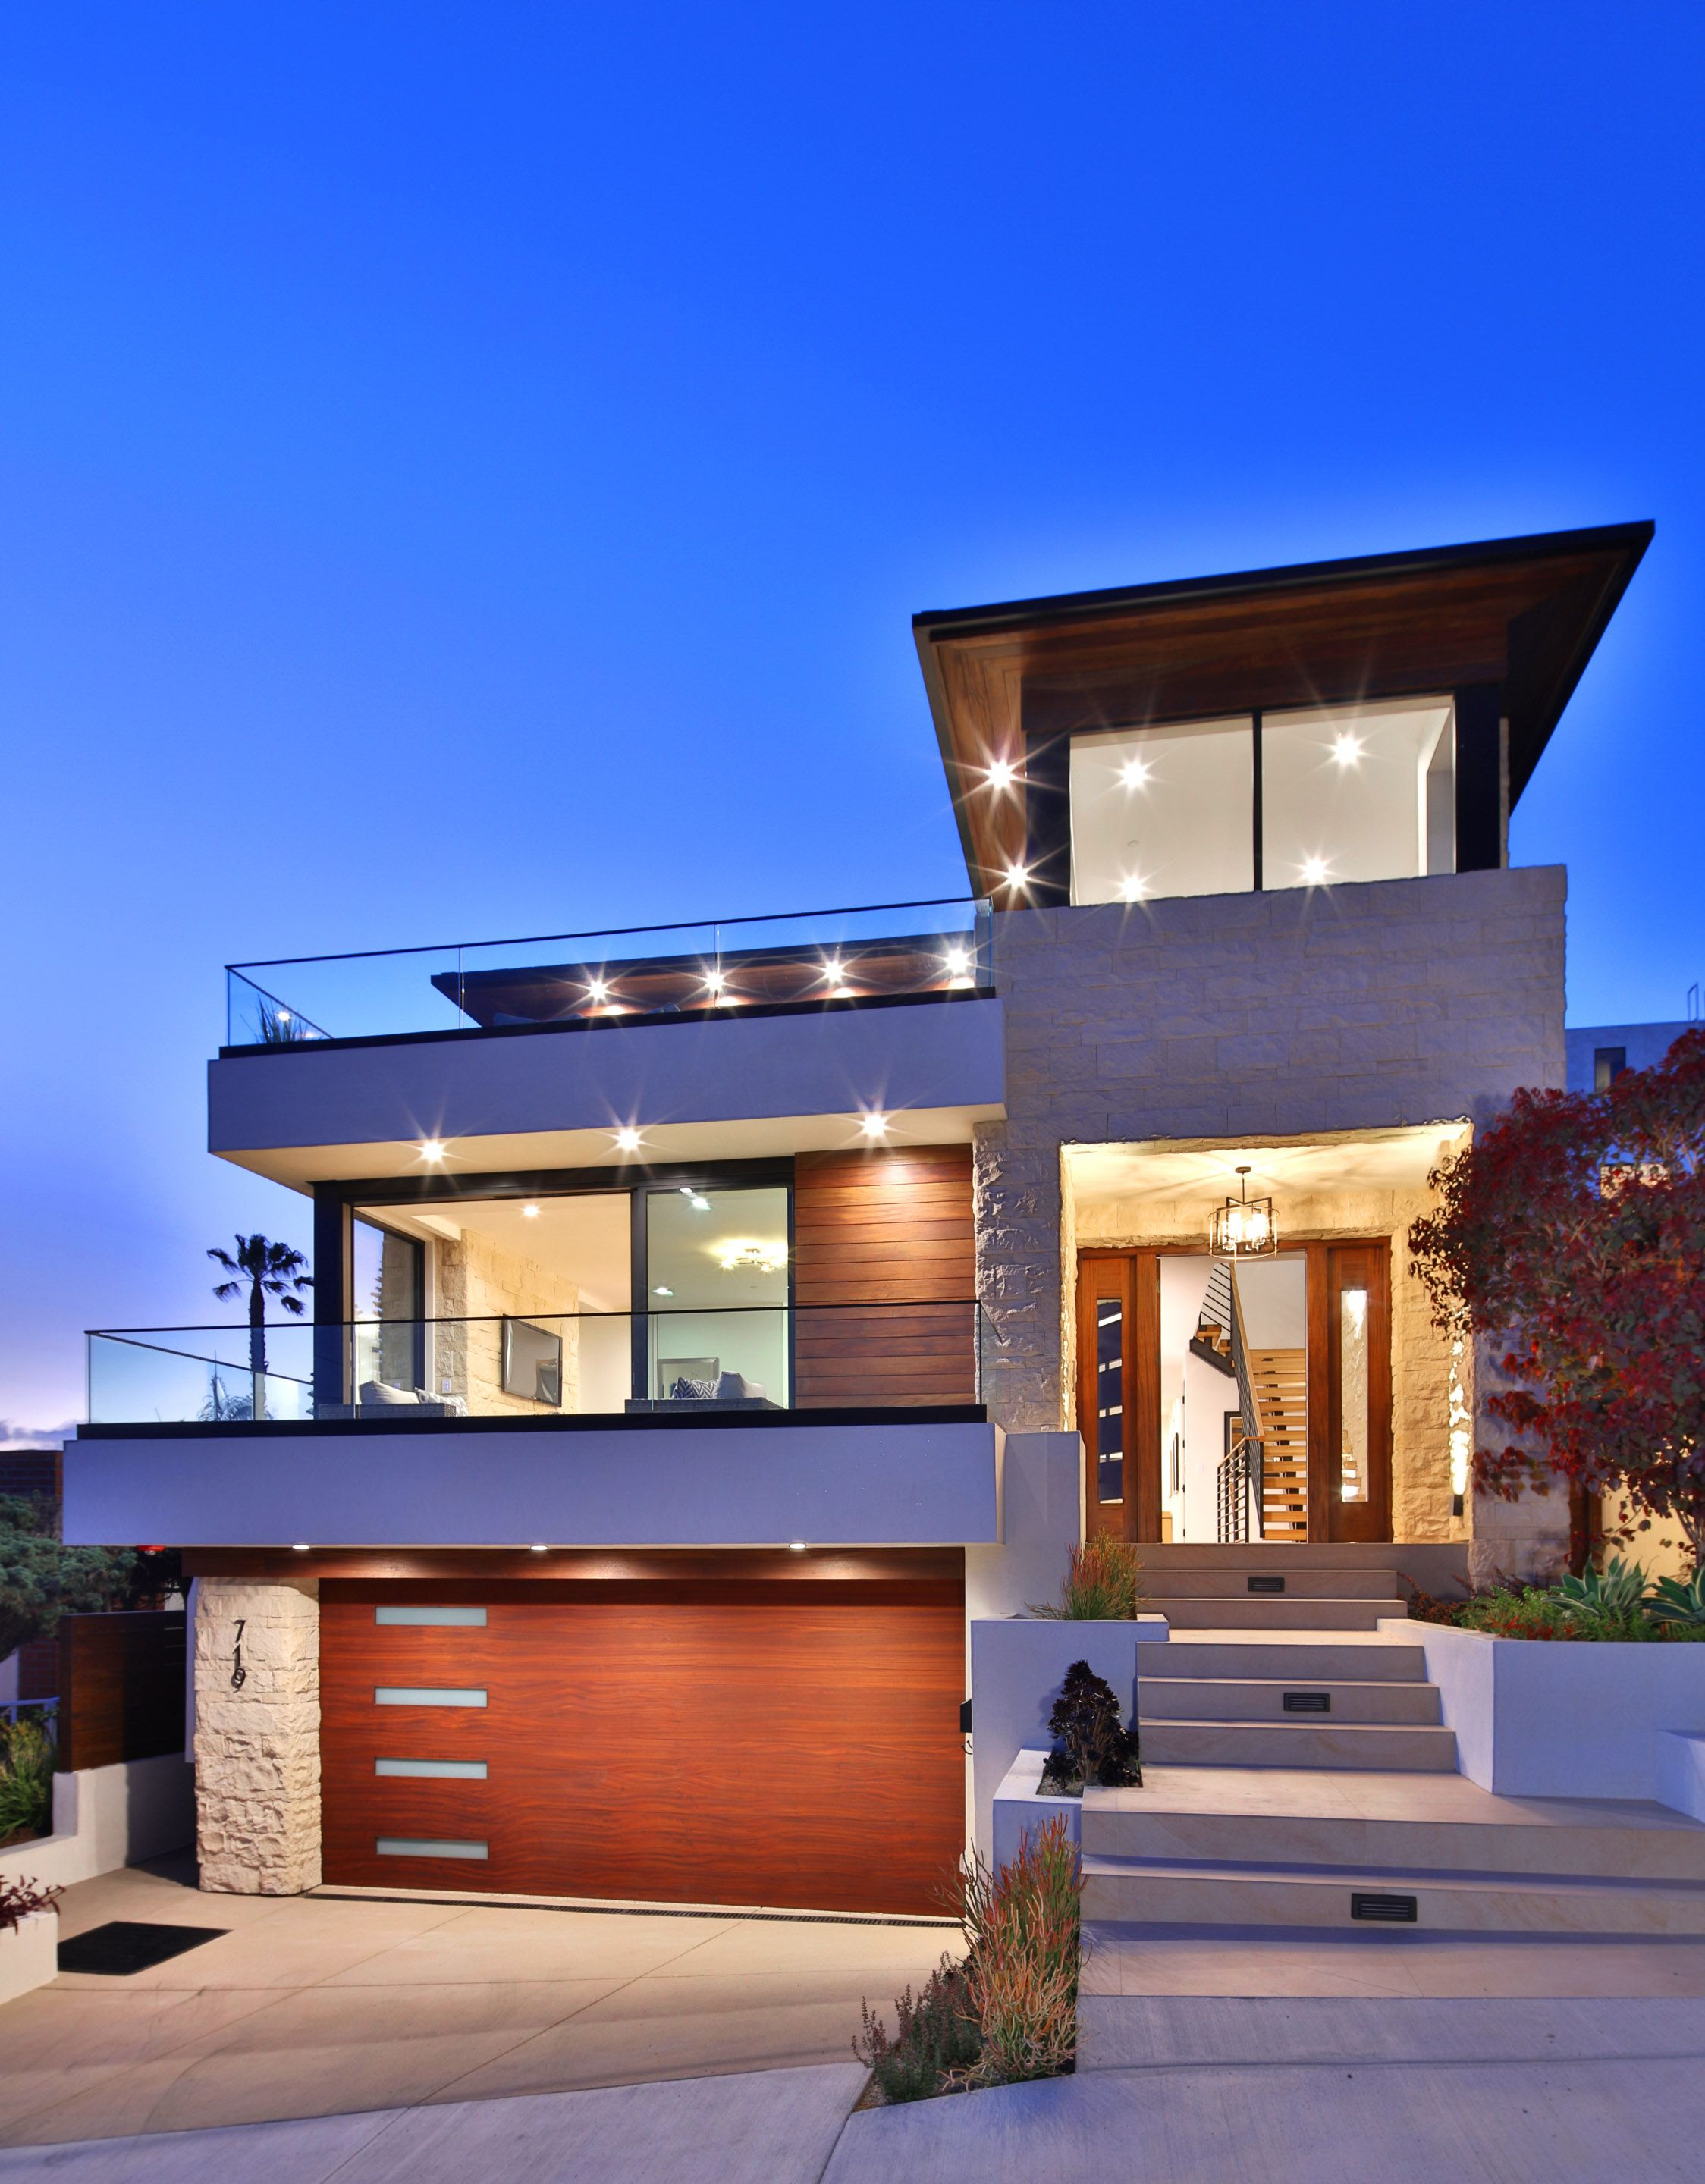 Luxury Modern Home Exterior In Southern California Luxury Modern